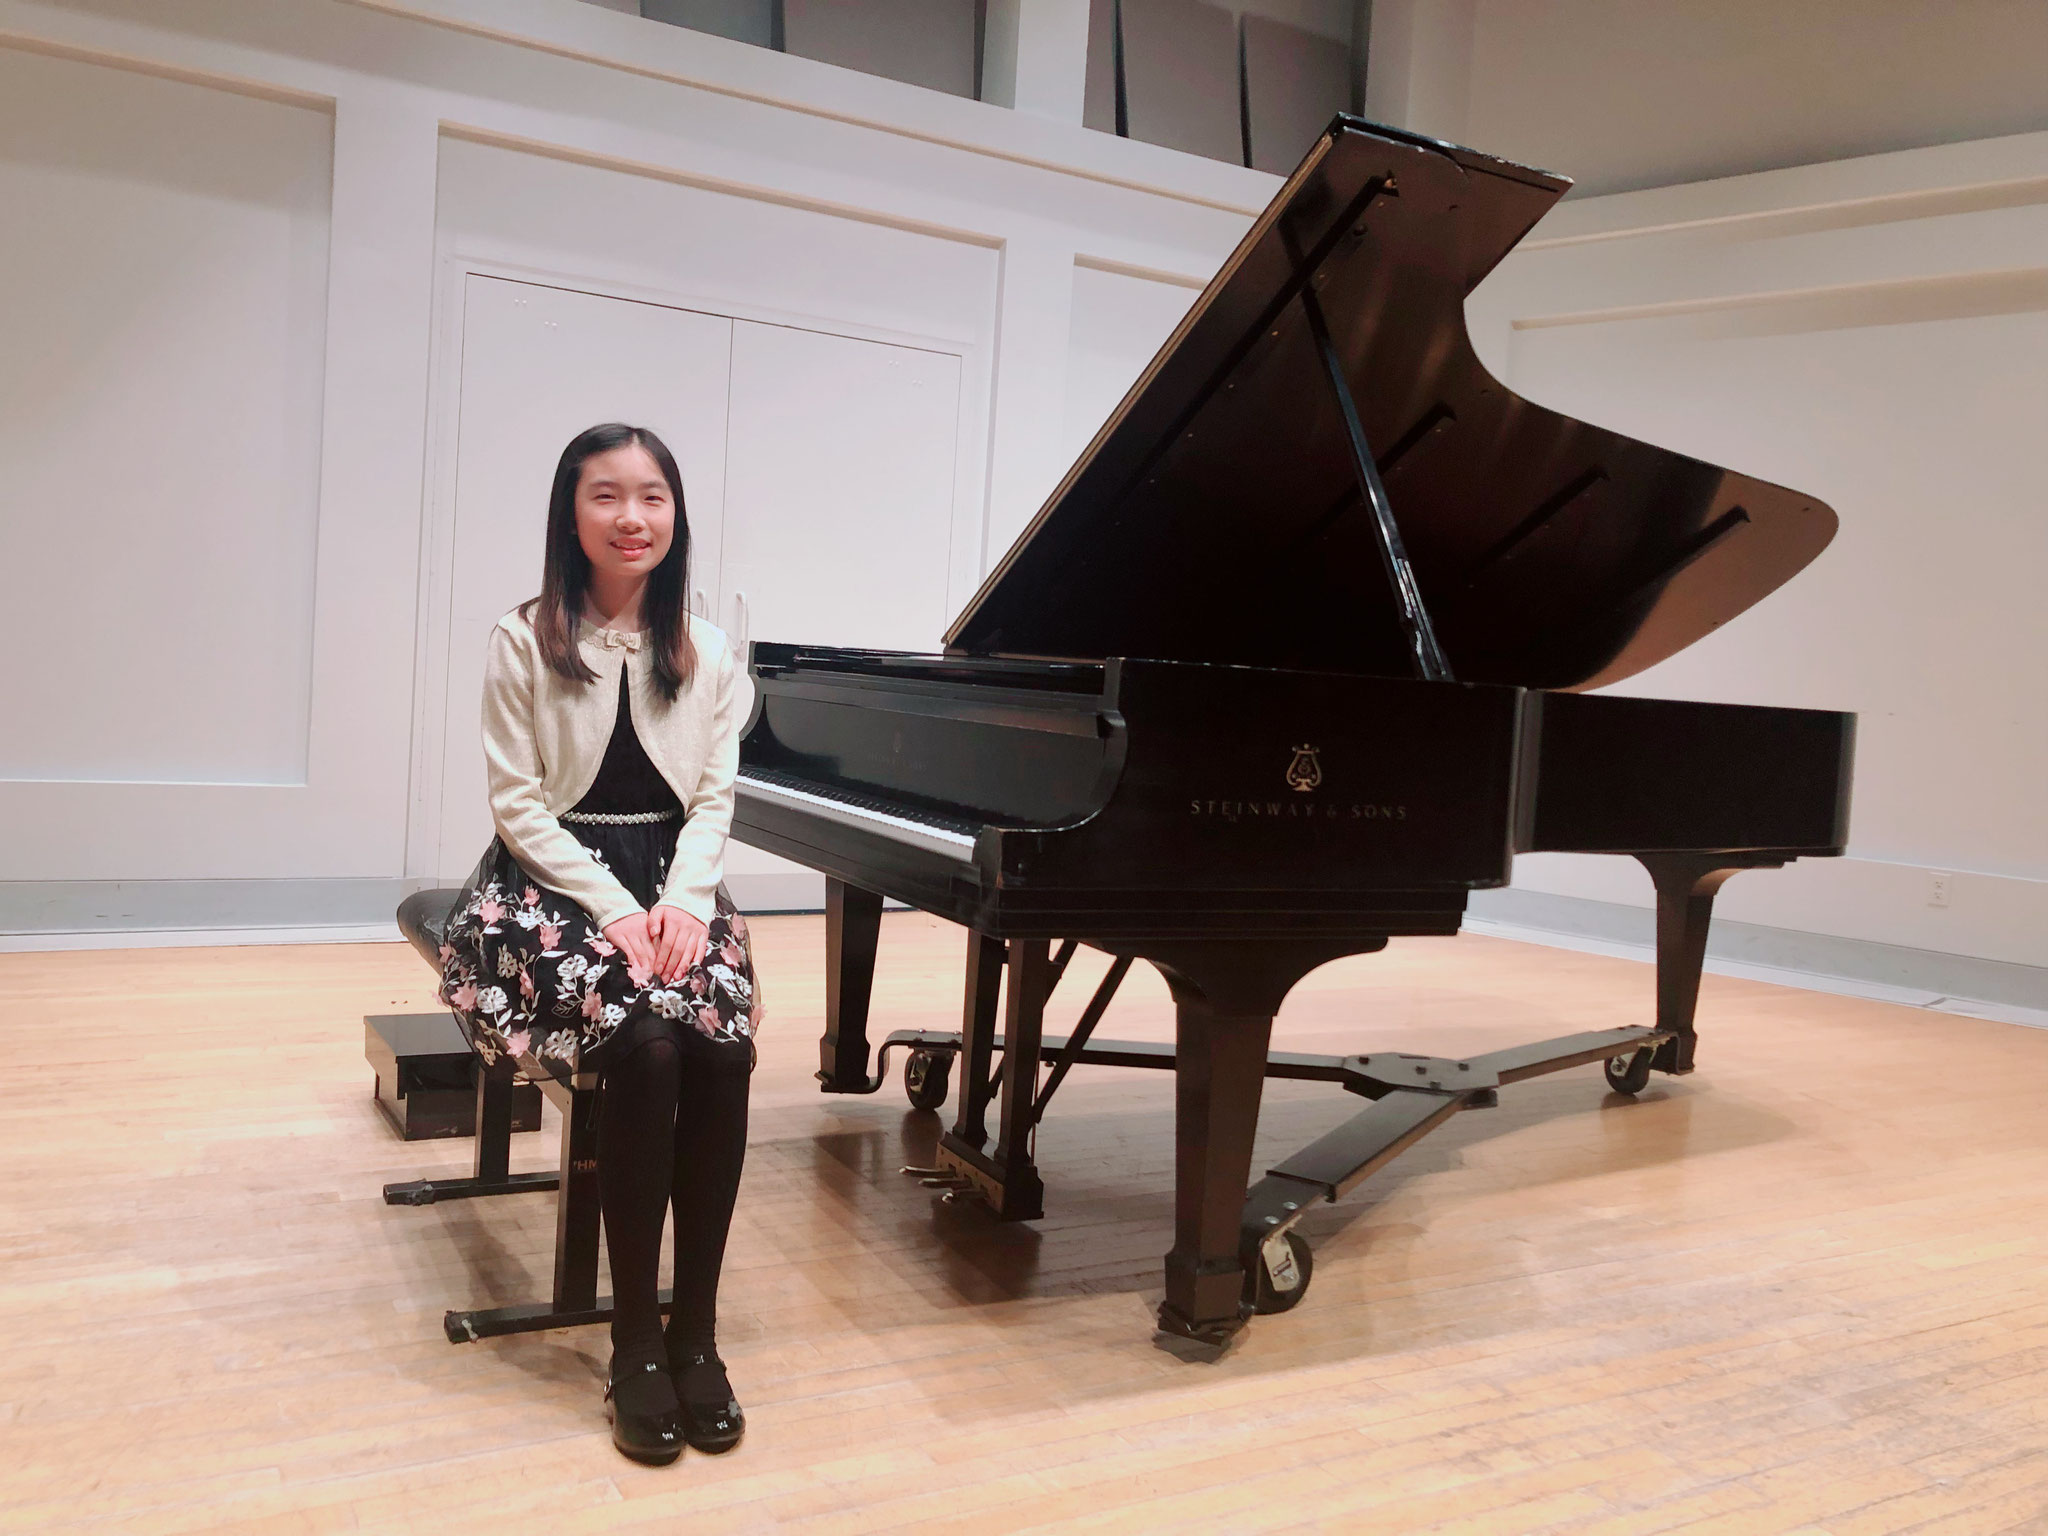 SUYEON HEO WON THE FIRST PRIZE AT THE ELITE INTERNATIONAL PIANO COMPETITION! (student of Indiana University JSoM YP program)